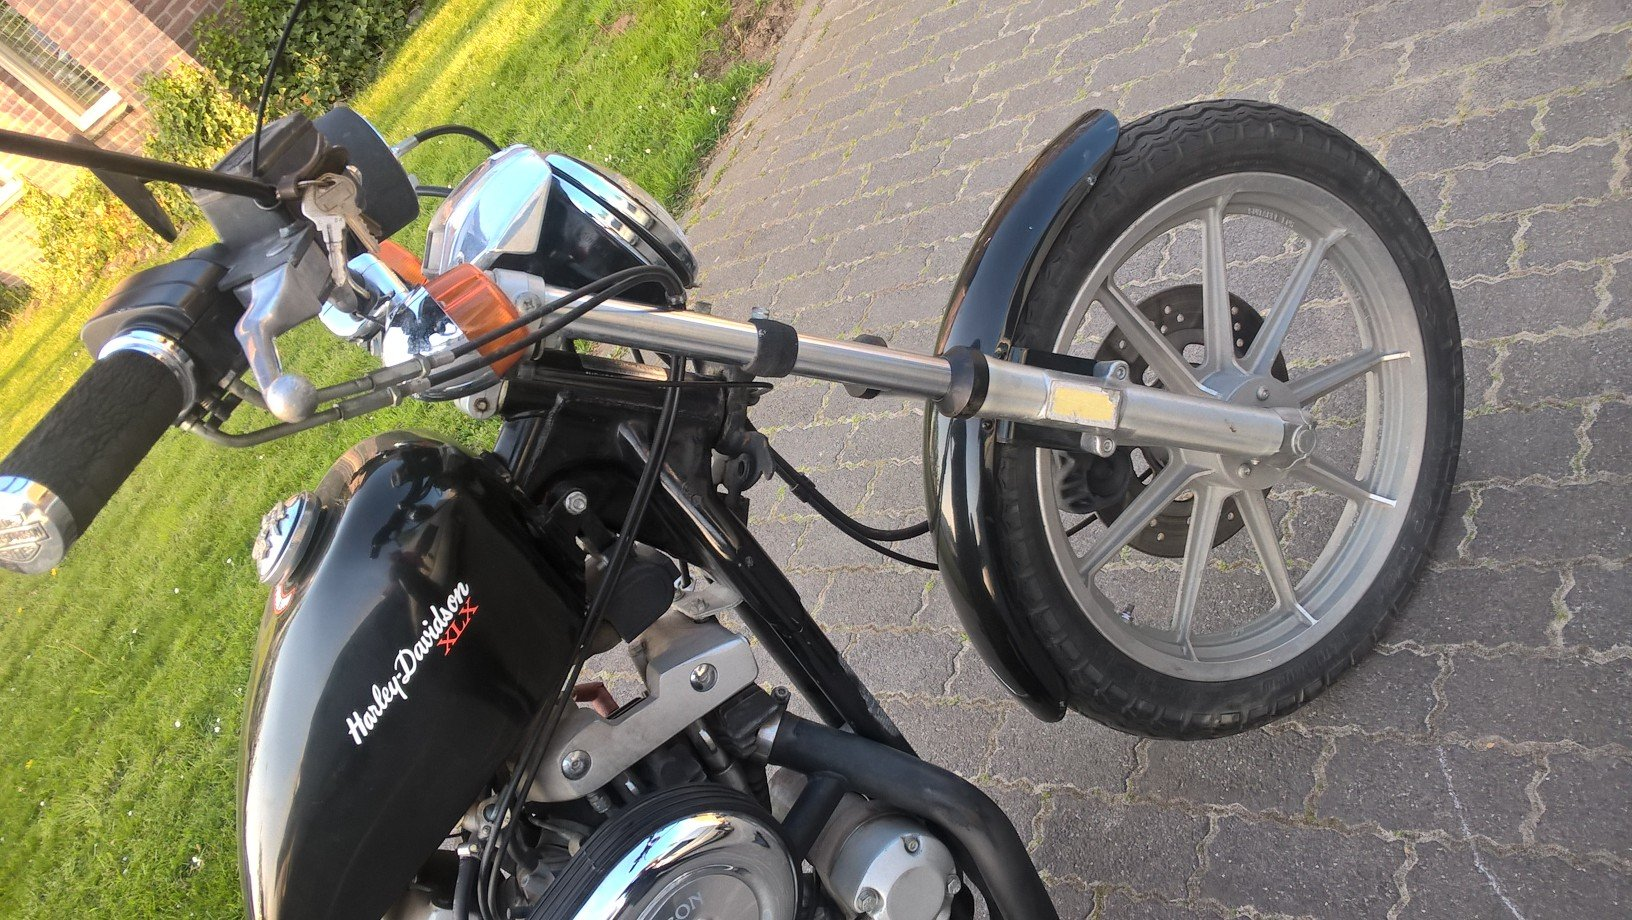 Harley davidson XLX 1985 For Sale | Car And Classic